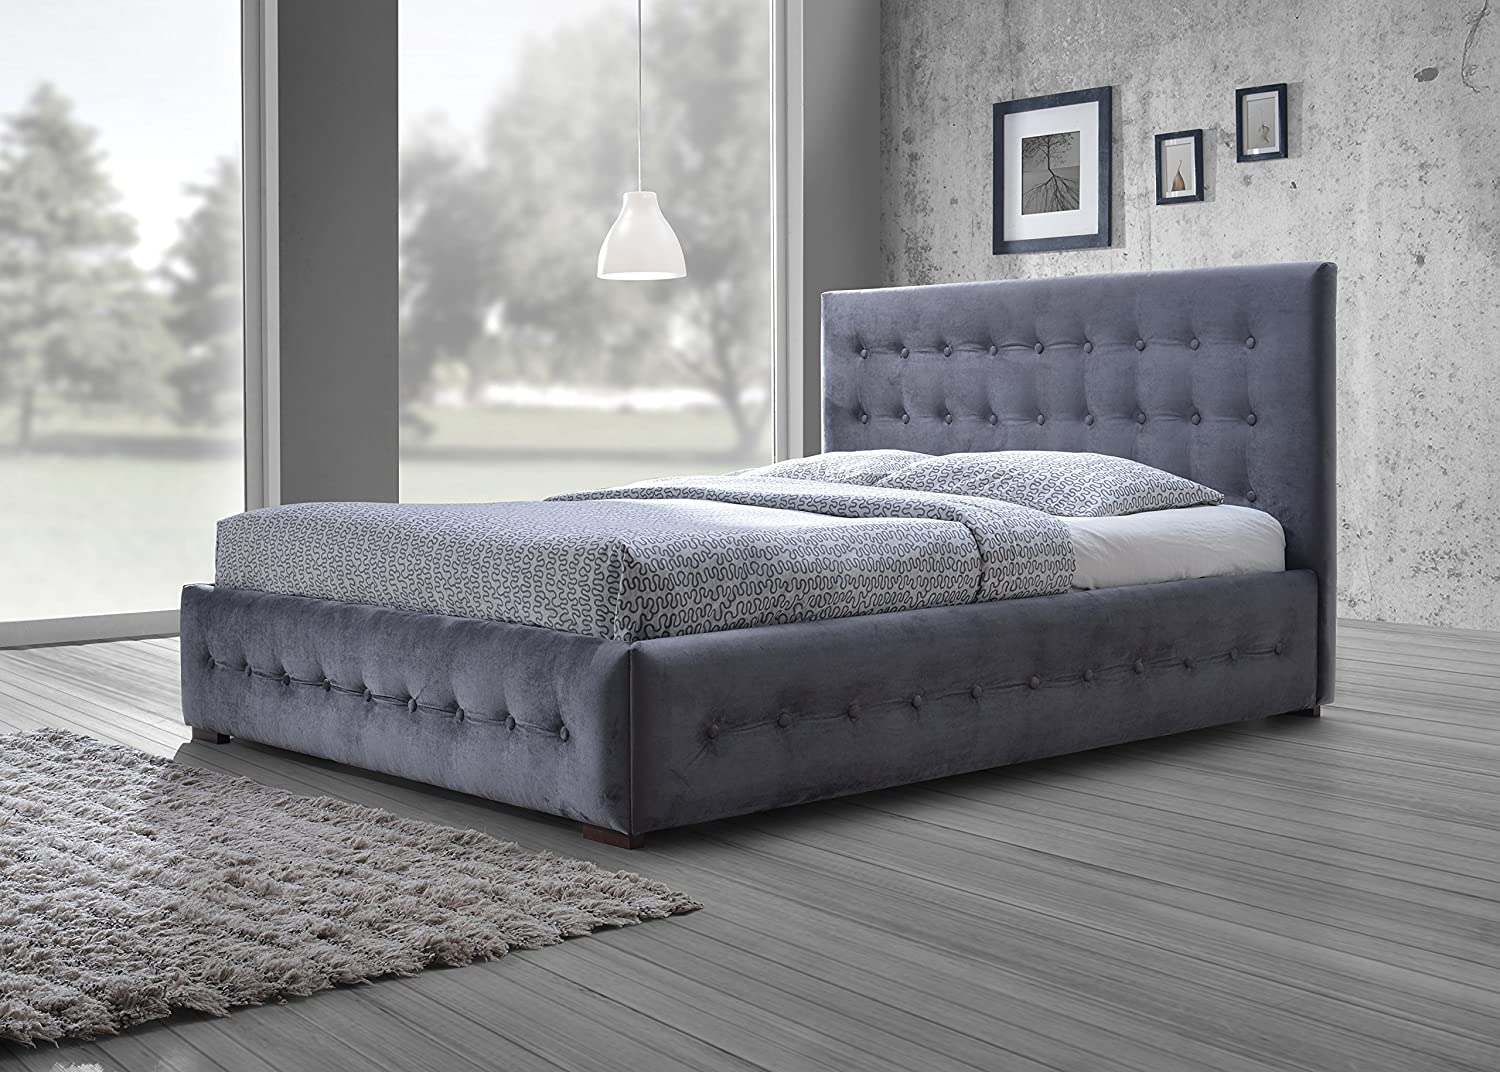 amazoncom wholesale interiors baxton studio margaret modern andcontemporary grey velvet buttontufted king platform bed king kitchen dining. amazoncom wholesale interiors baxton studio margaret modern and